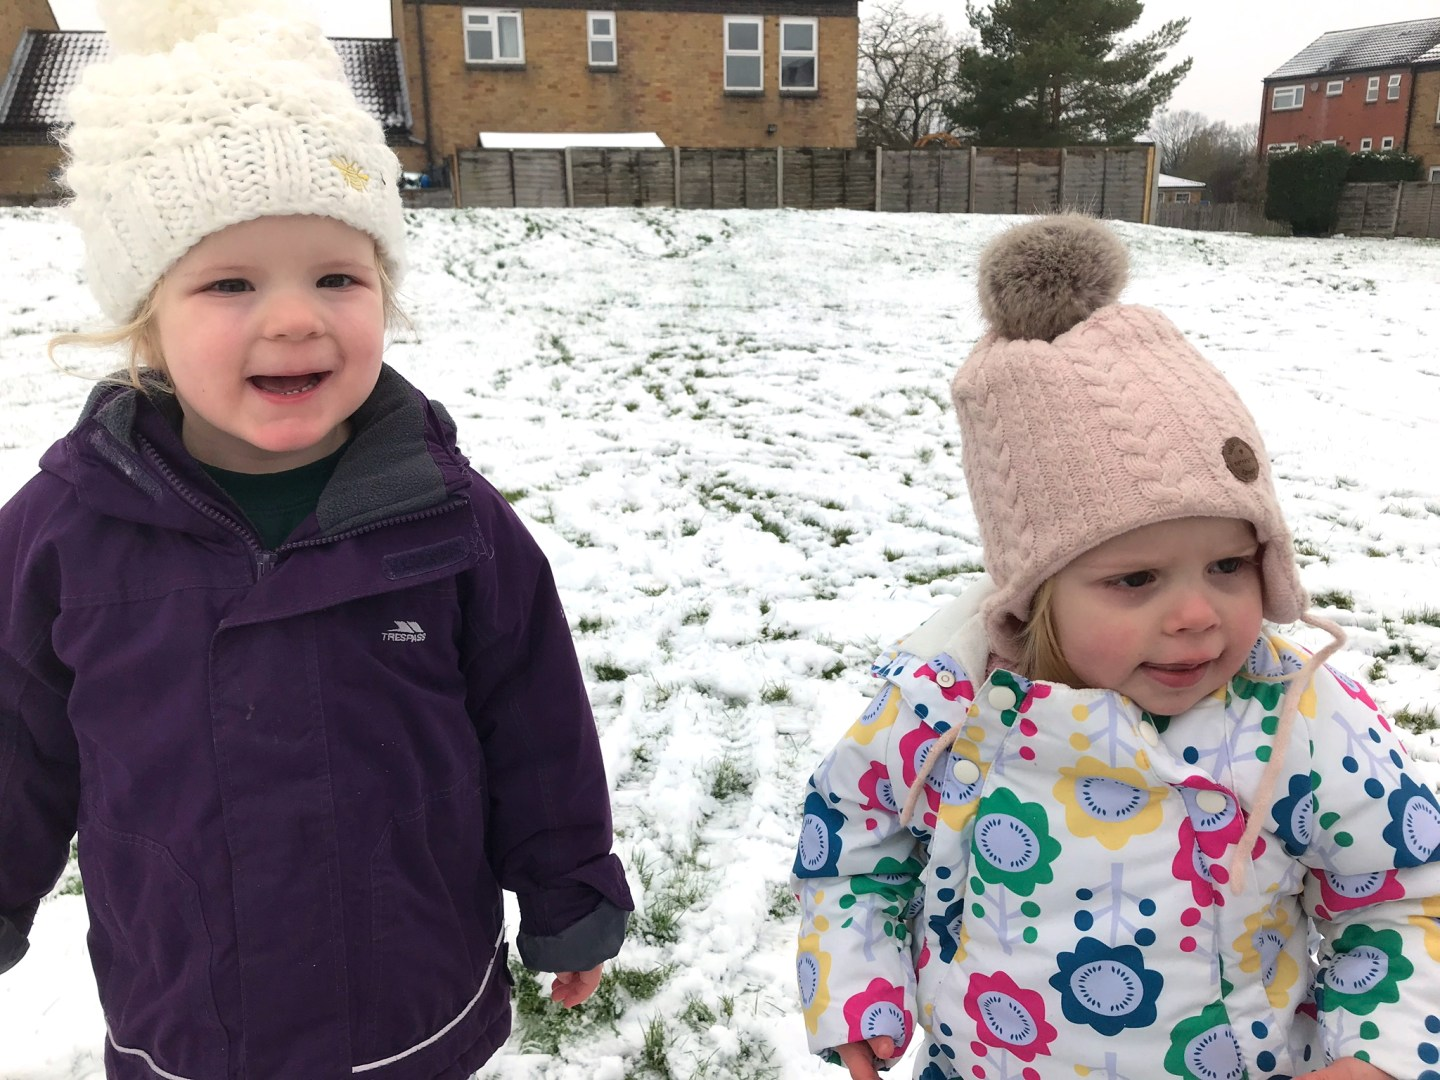 Two sisters in bobble hats, standing in a snowy field